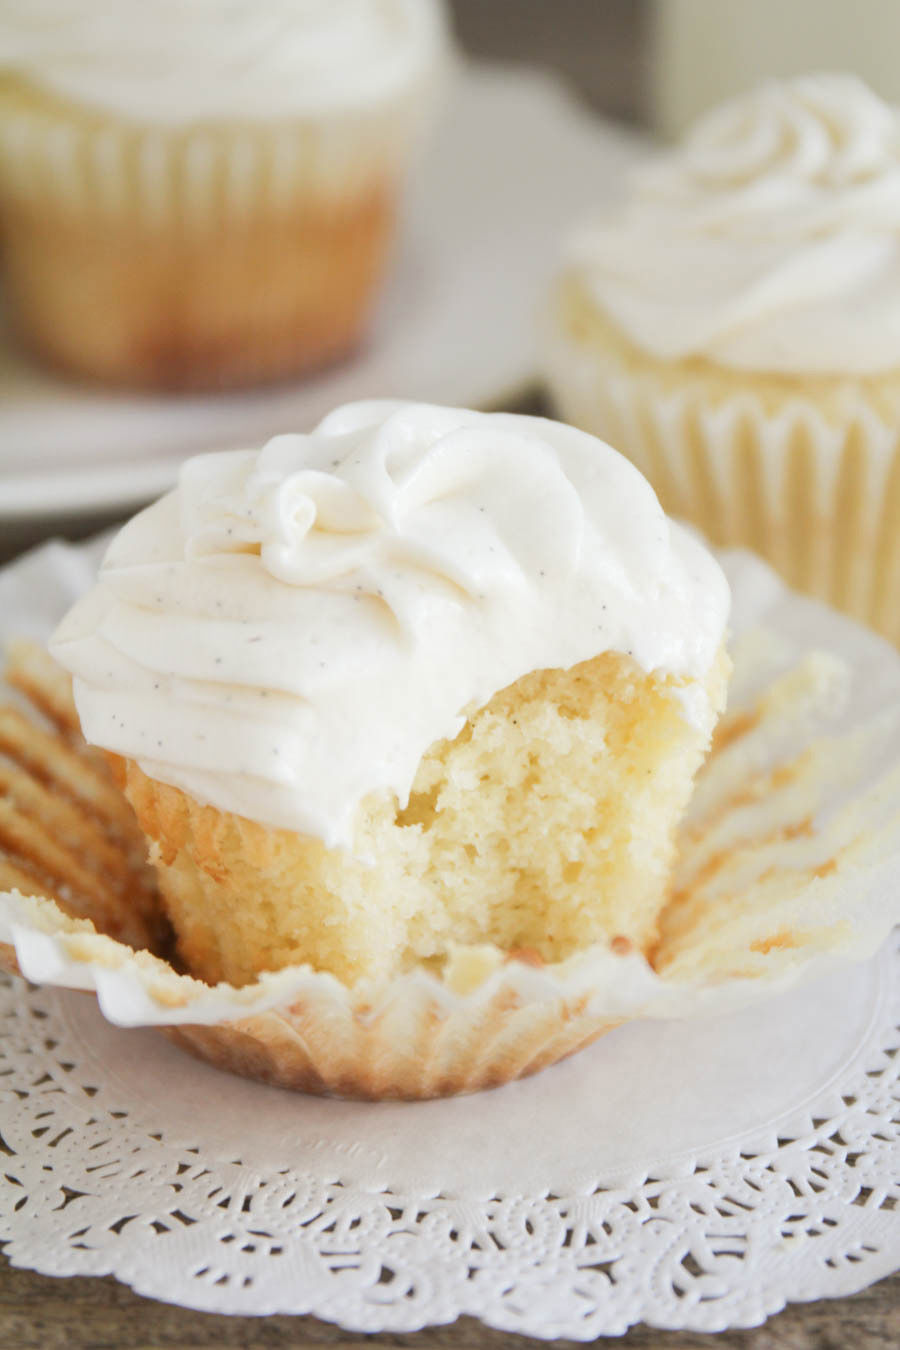 These vanilla bean cupcakes are light and moist, with the perfect tender crumb. The perfect vanilla cupcake!